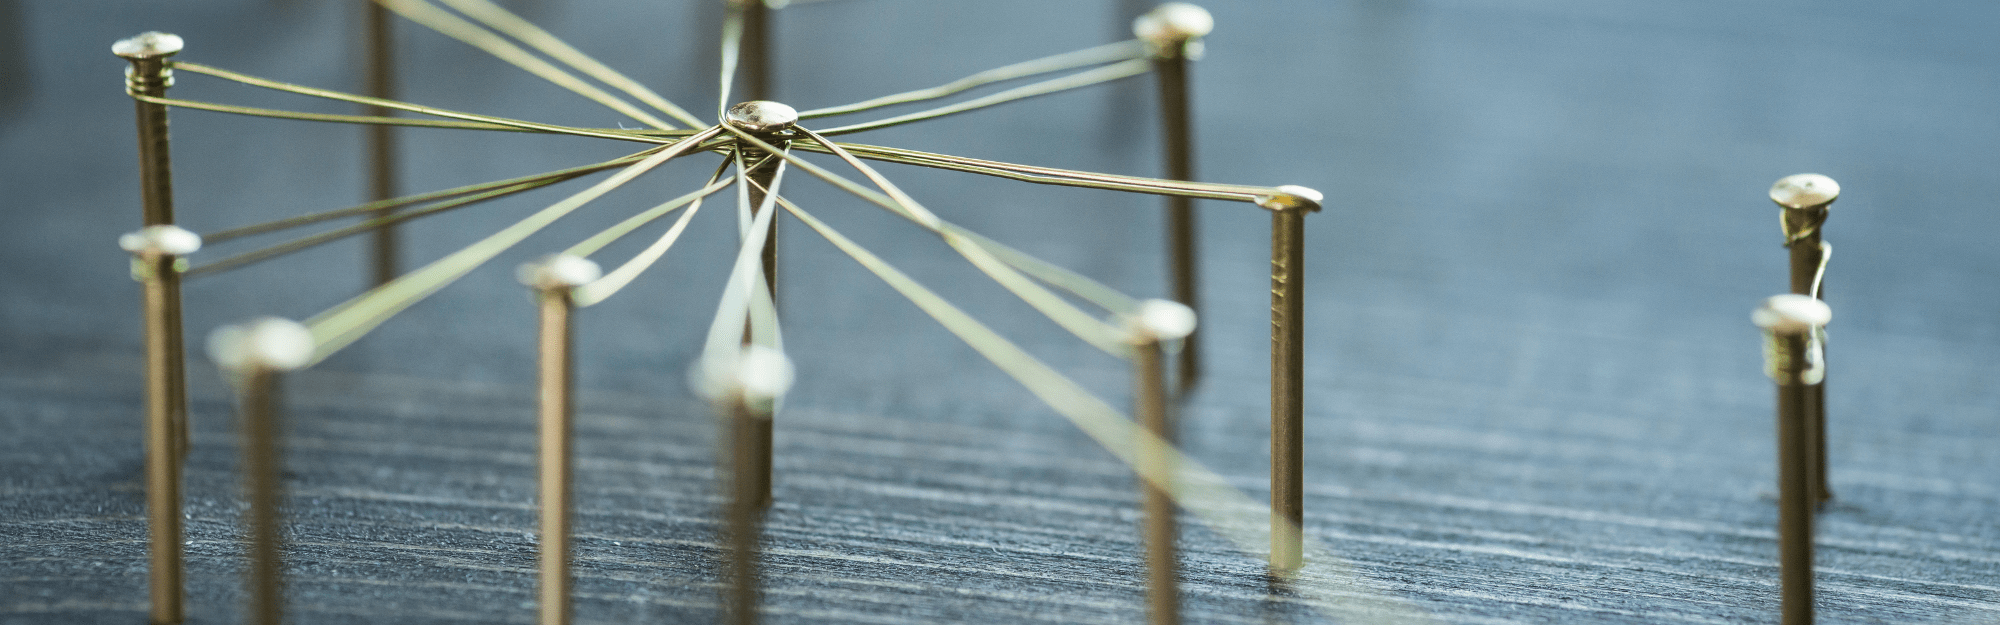 image of pins connected by a wire